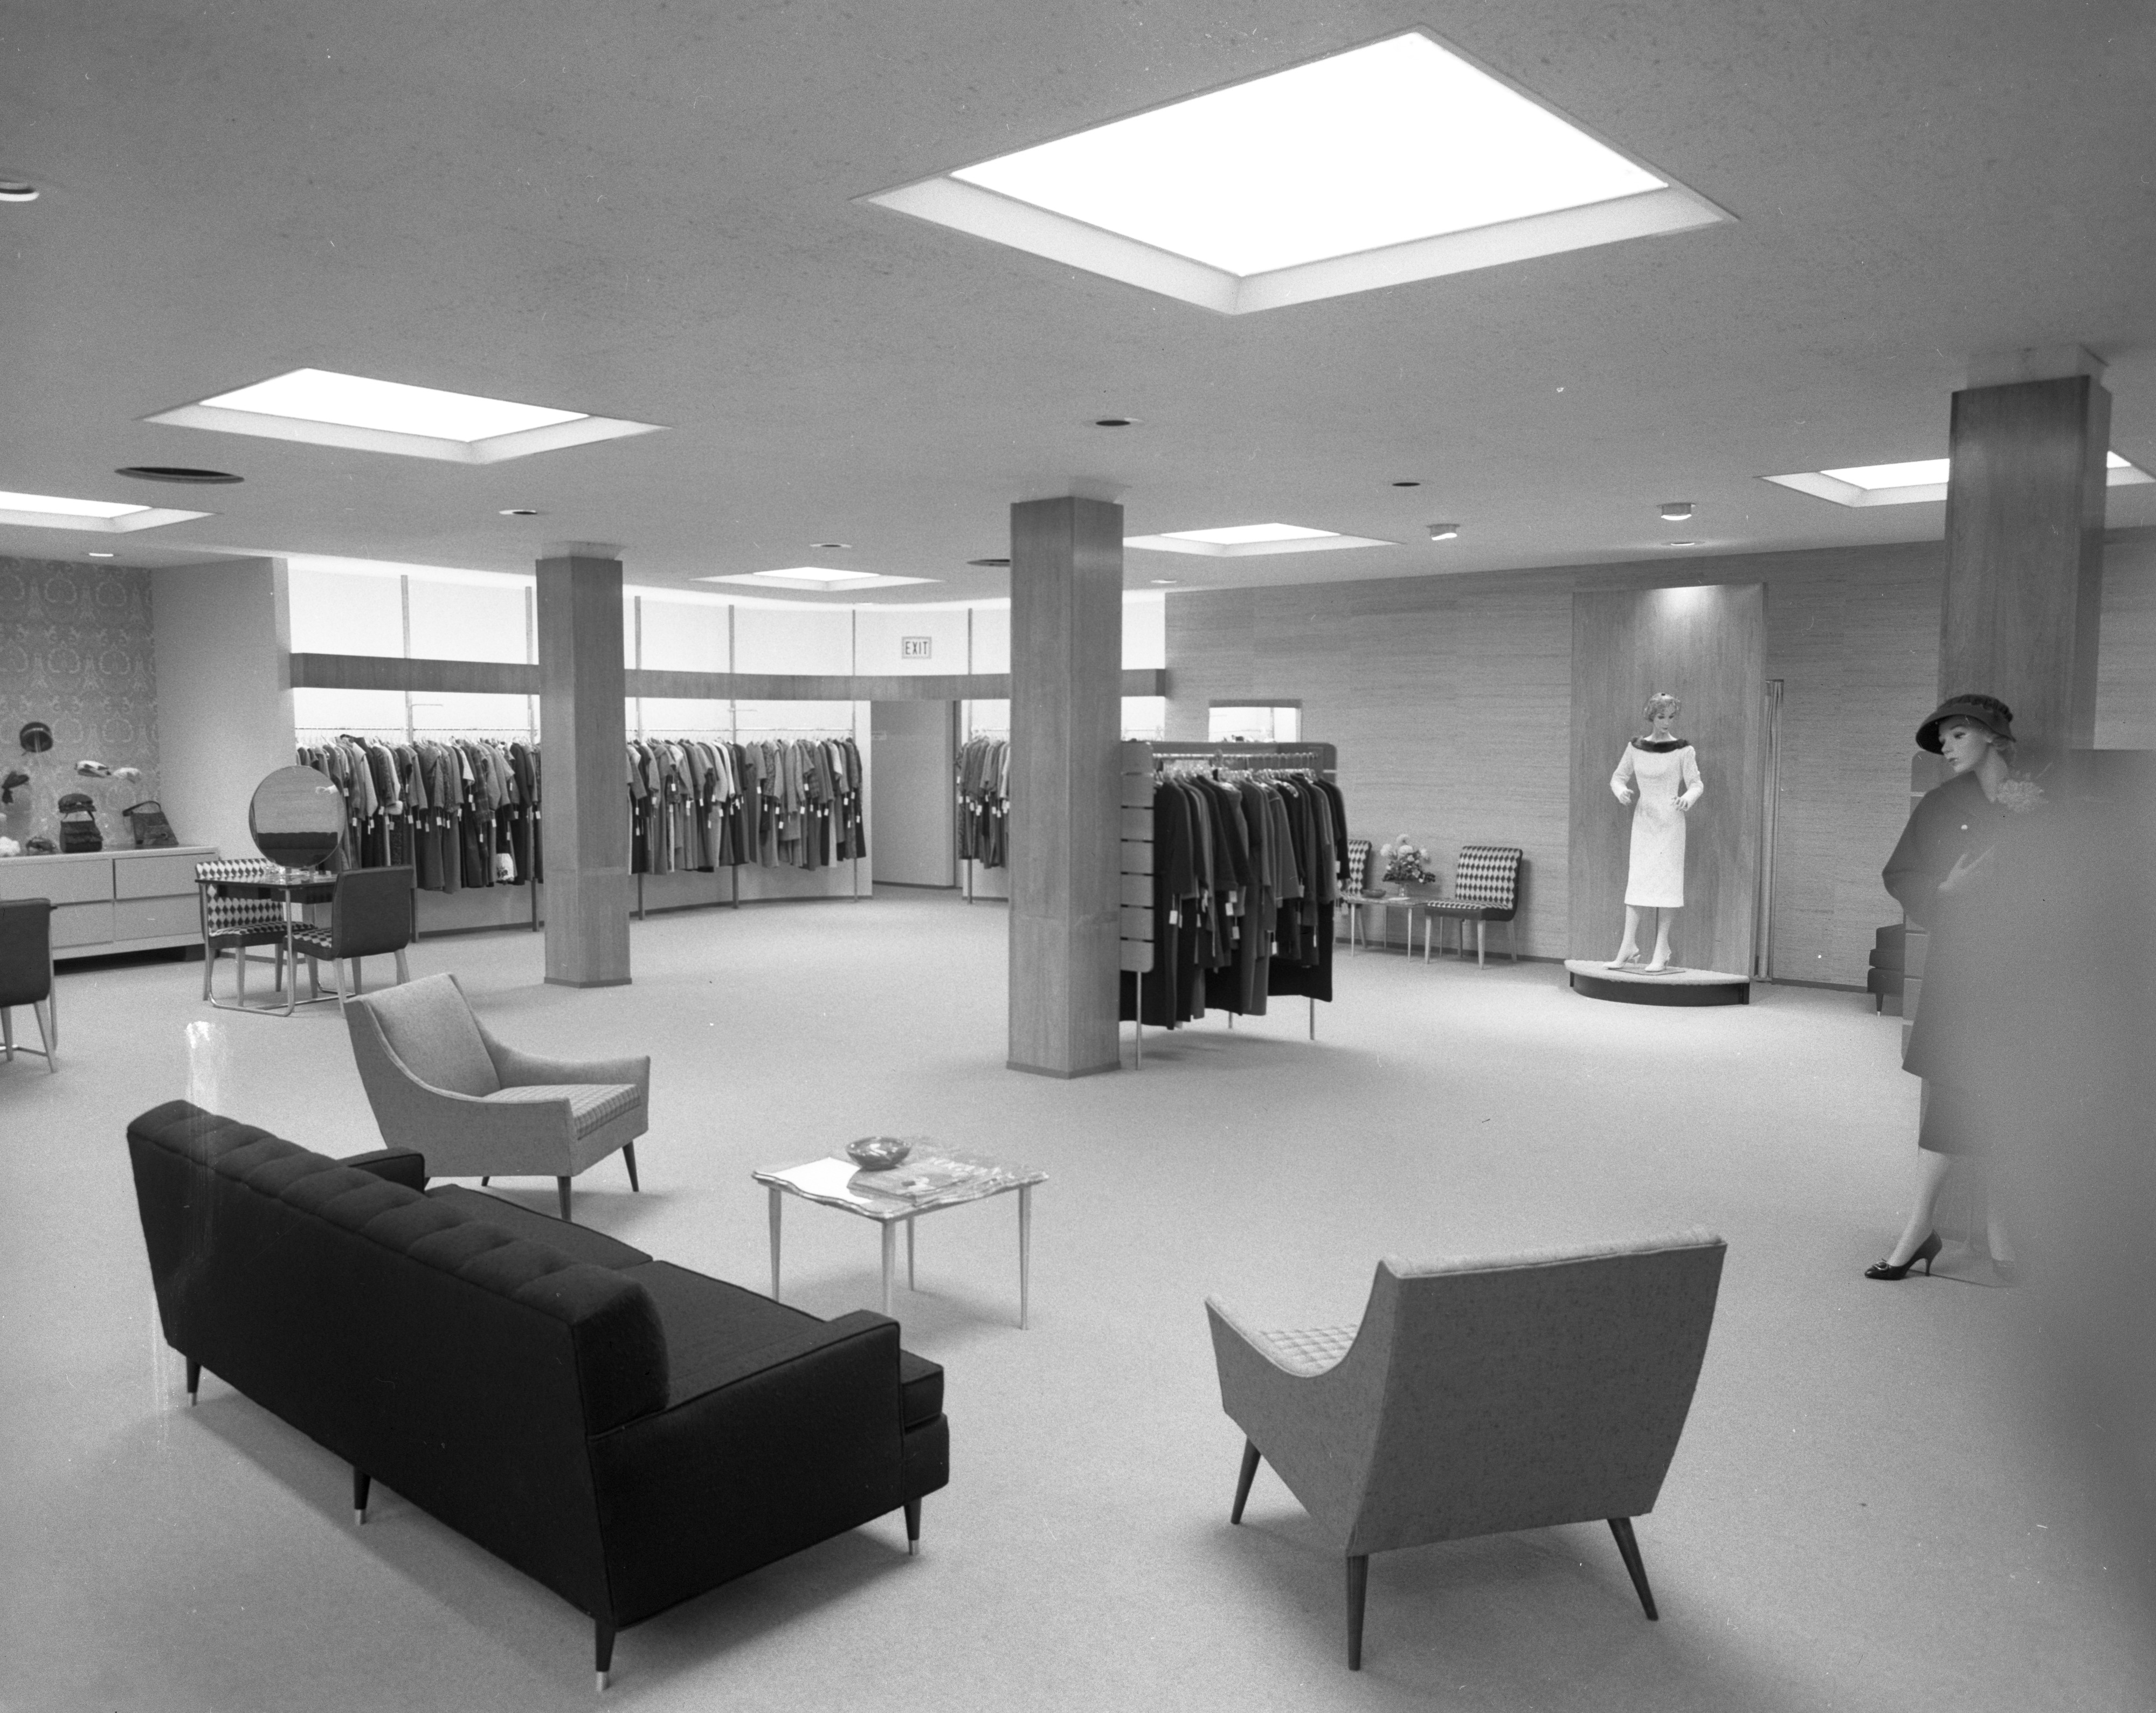 Sales space added to Jacobson's, 612 E. Liberty, October 1958 image